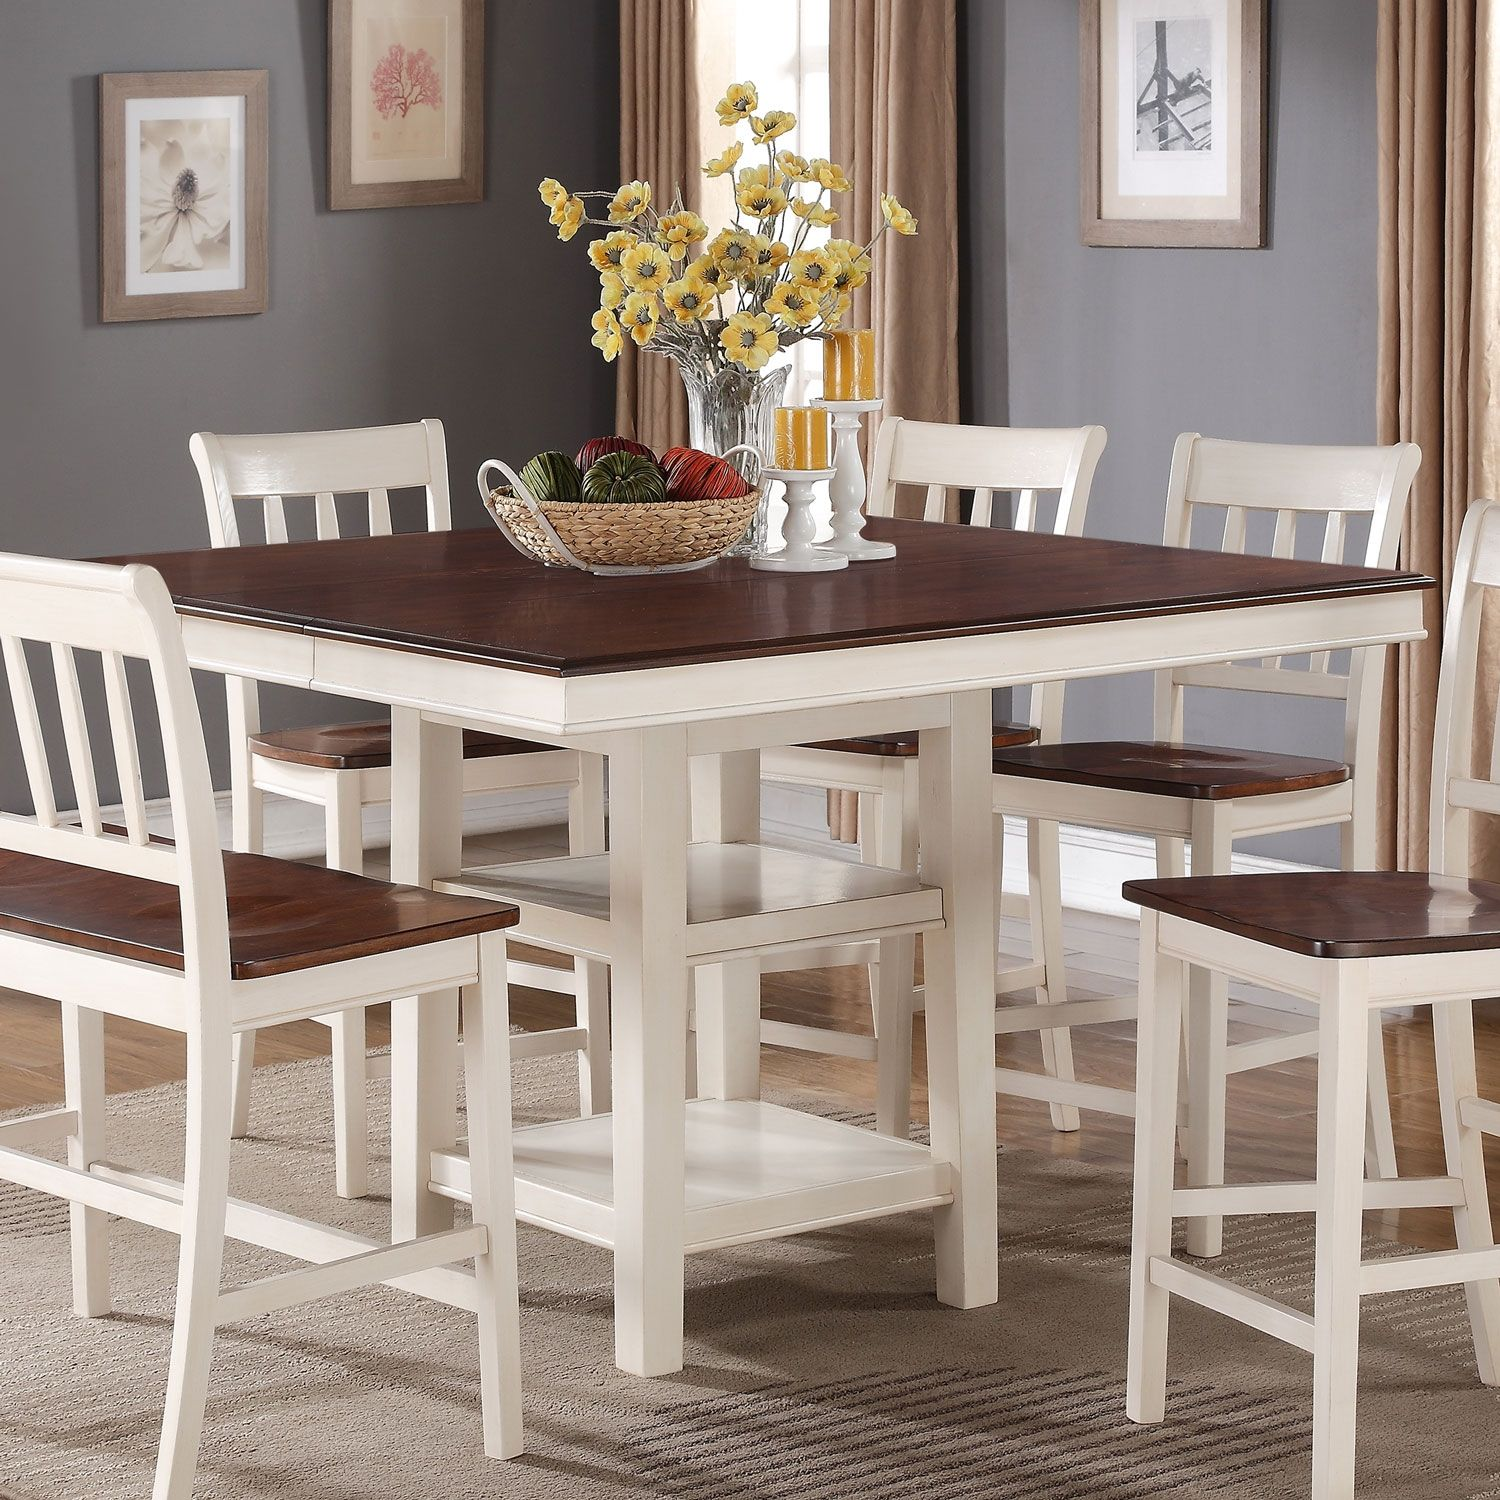 Explore Counter Height Dining Table Chair Backs And More